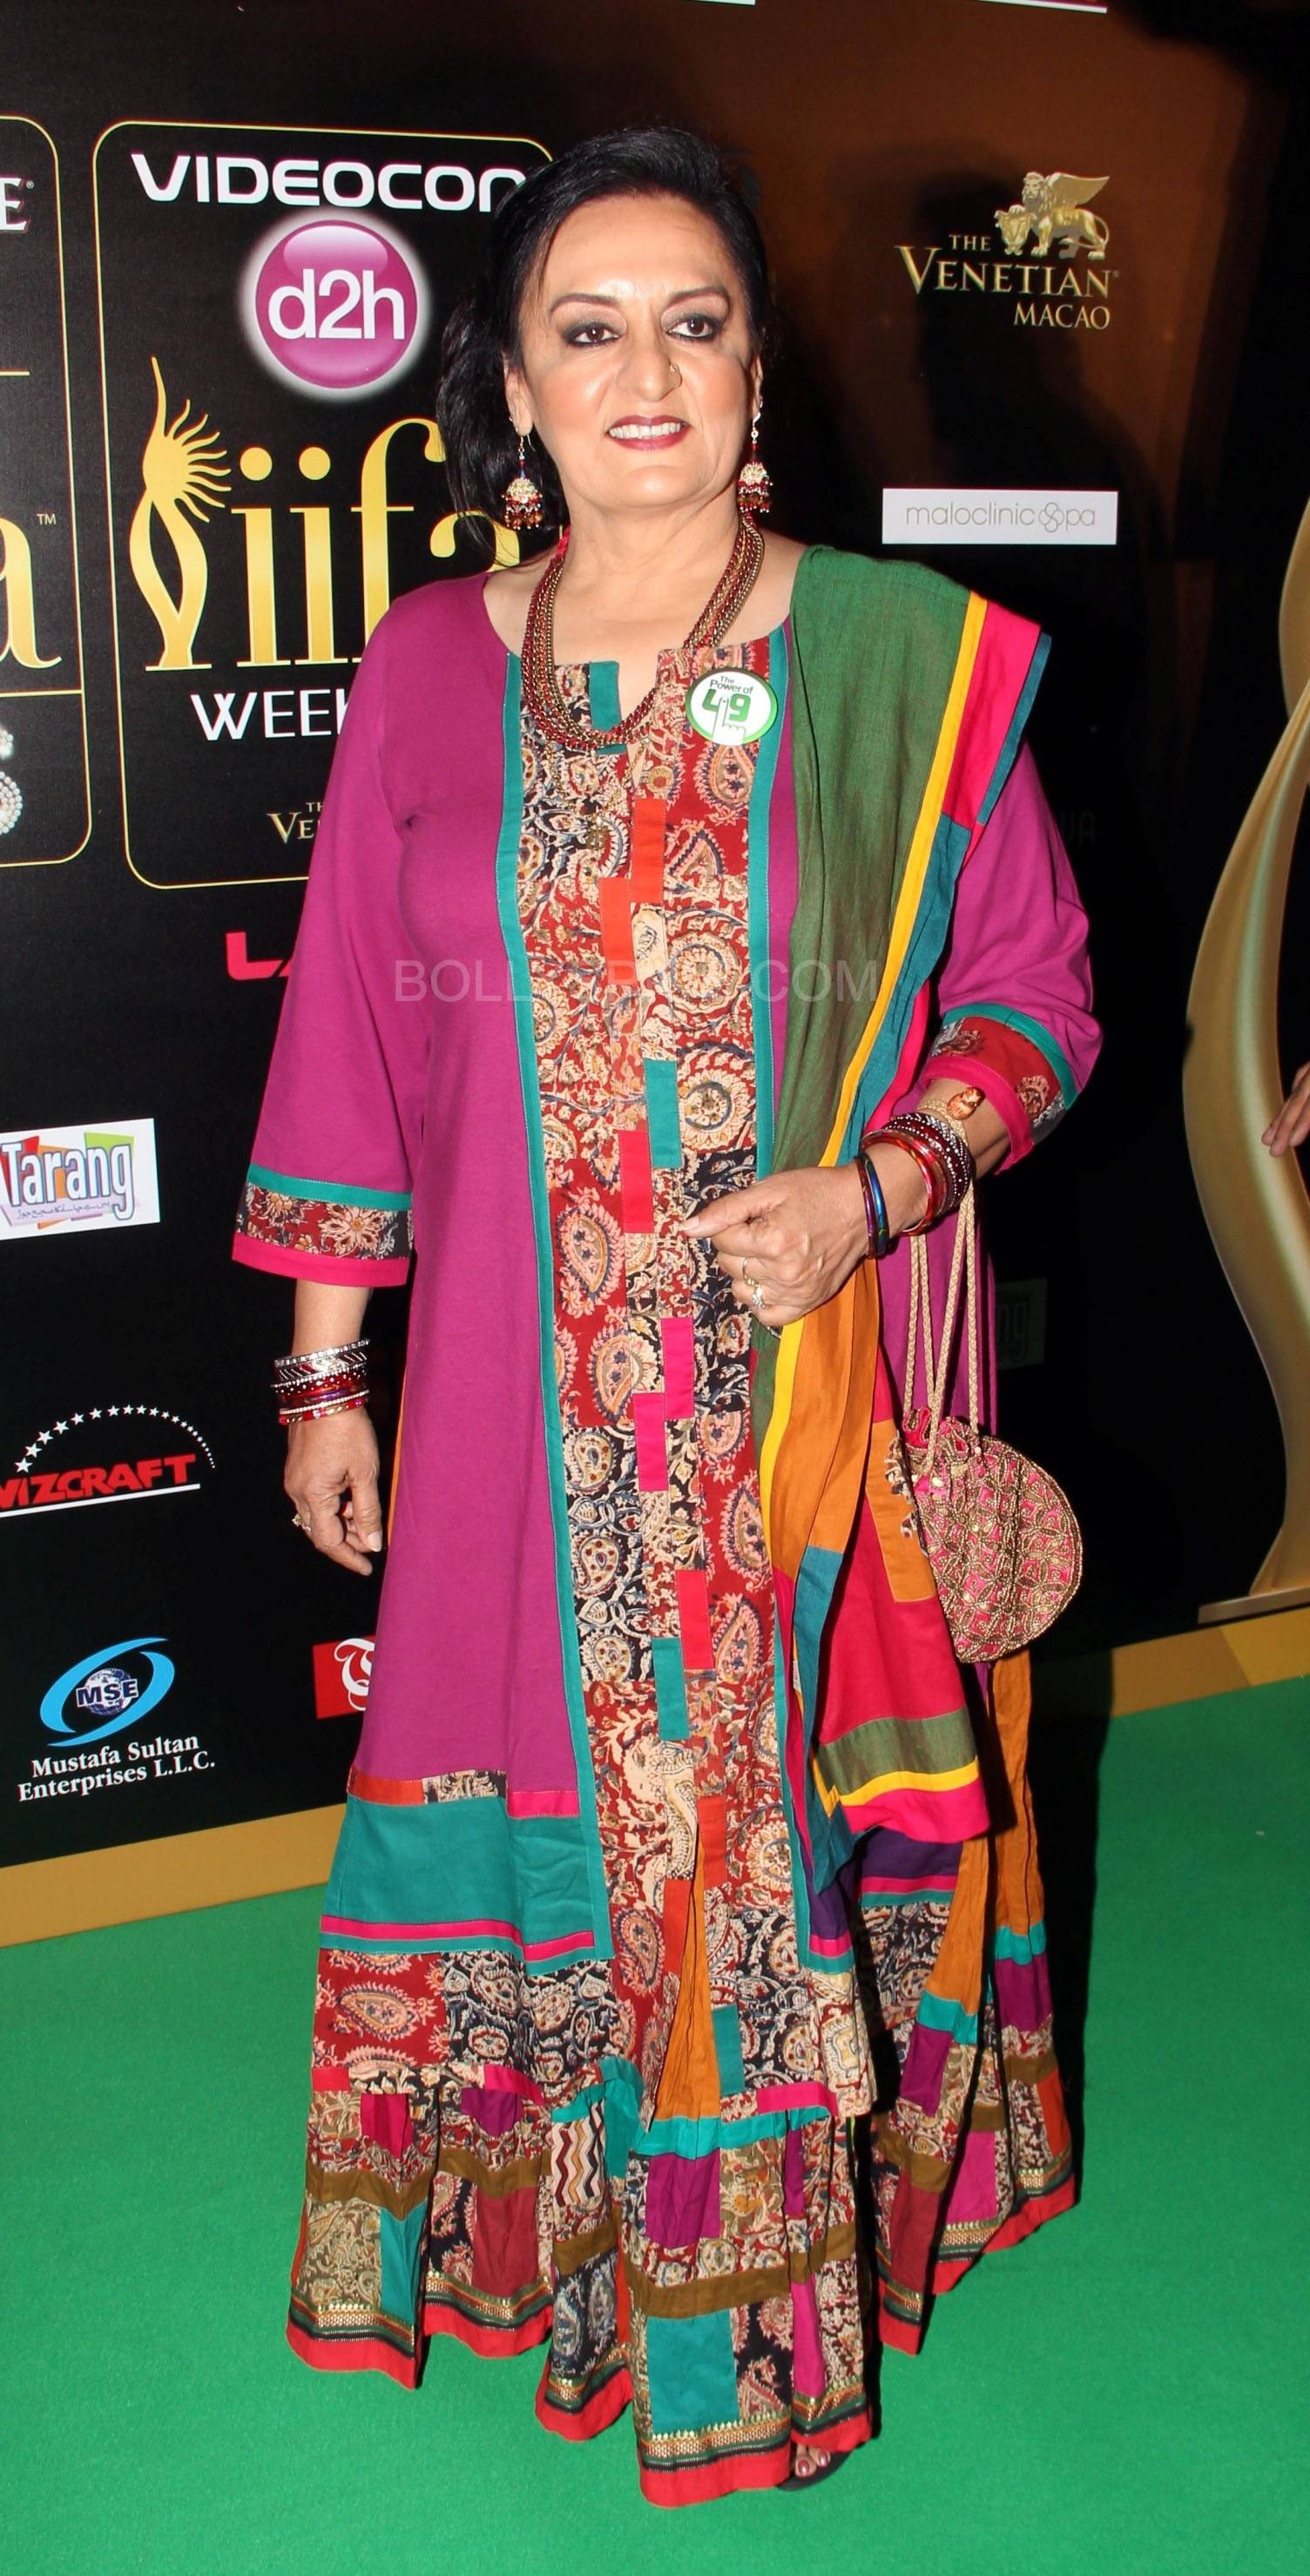 Dolly Ahluwalia at IIFA Rocks Green carpet More from IIFA Rocks including winners and more Green Carpet pics! Pics added!